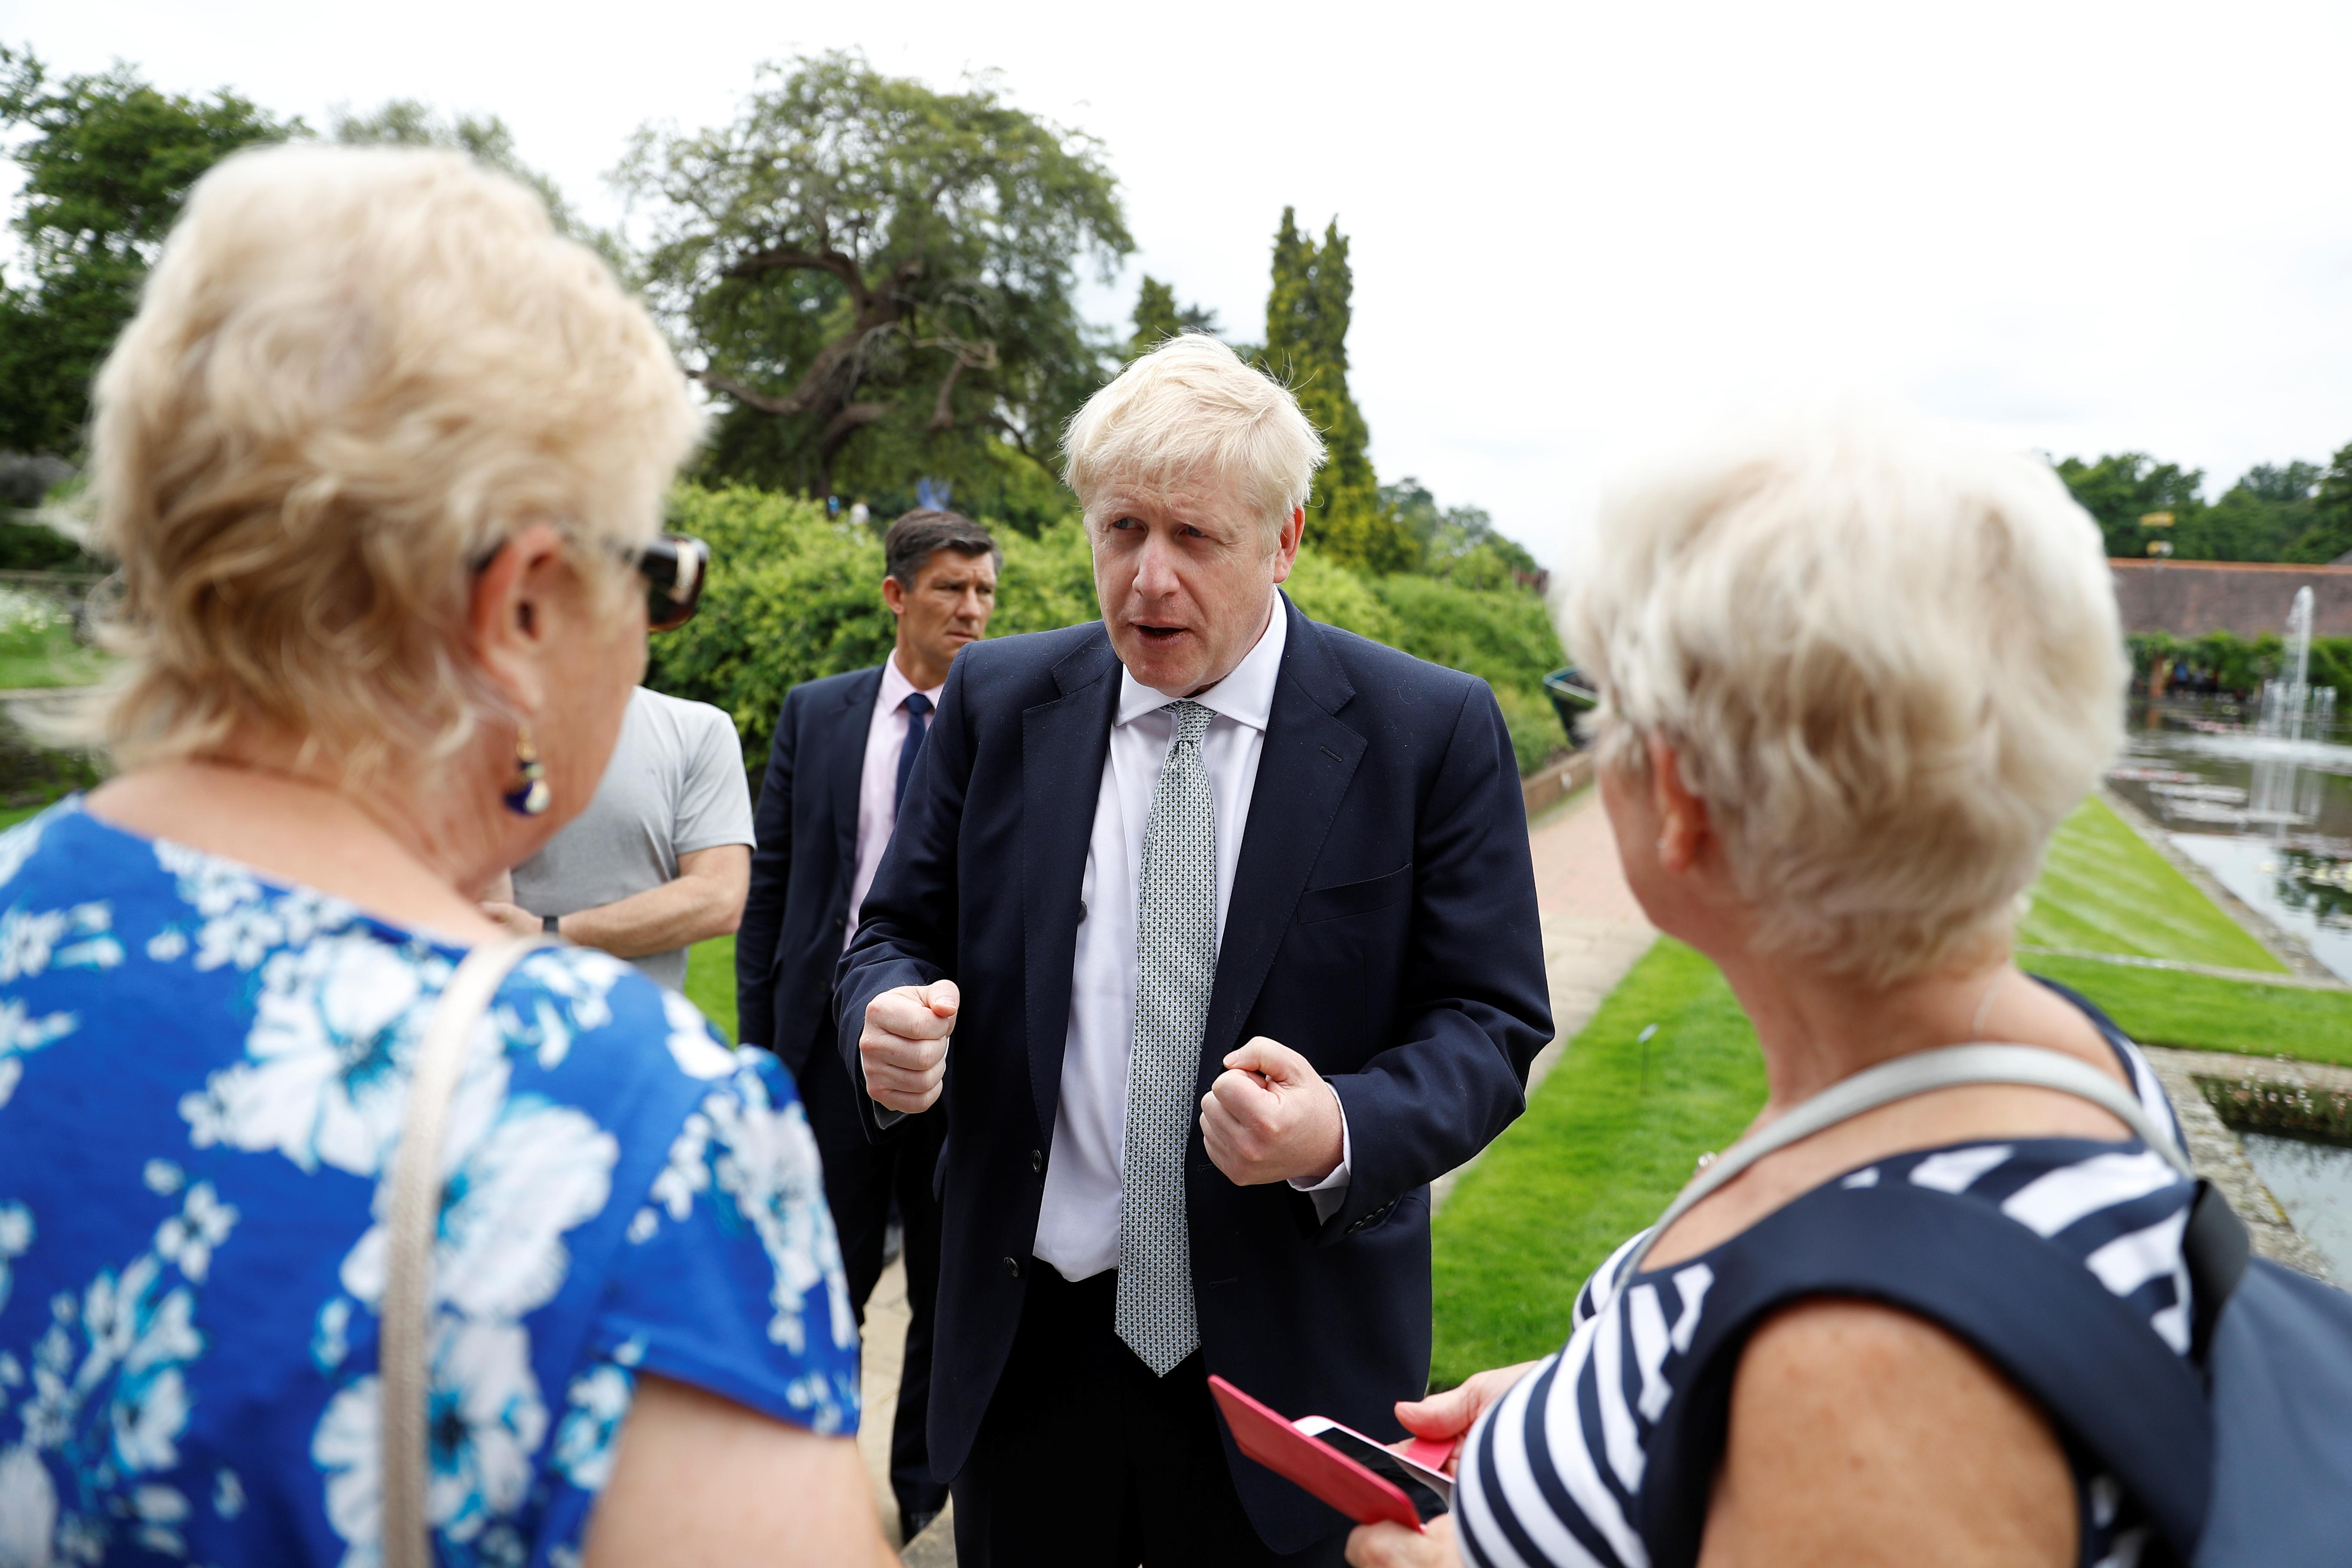 Boris Johnson for UK prime minister? It's a love-hate thing, say voters